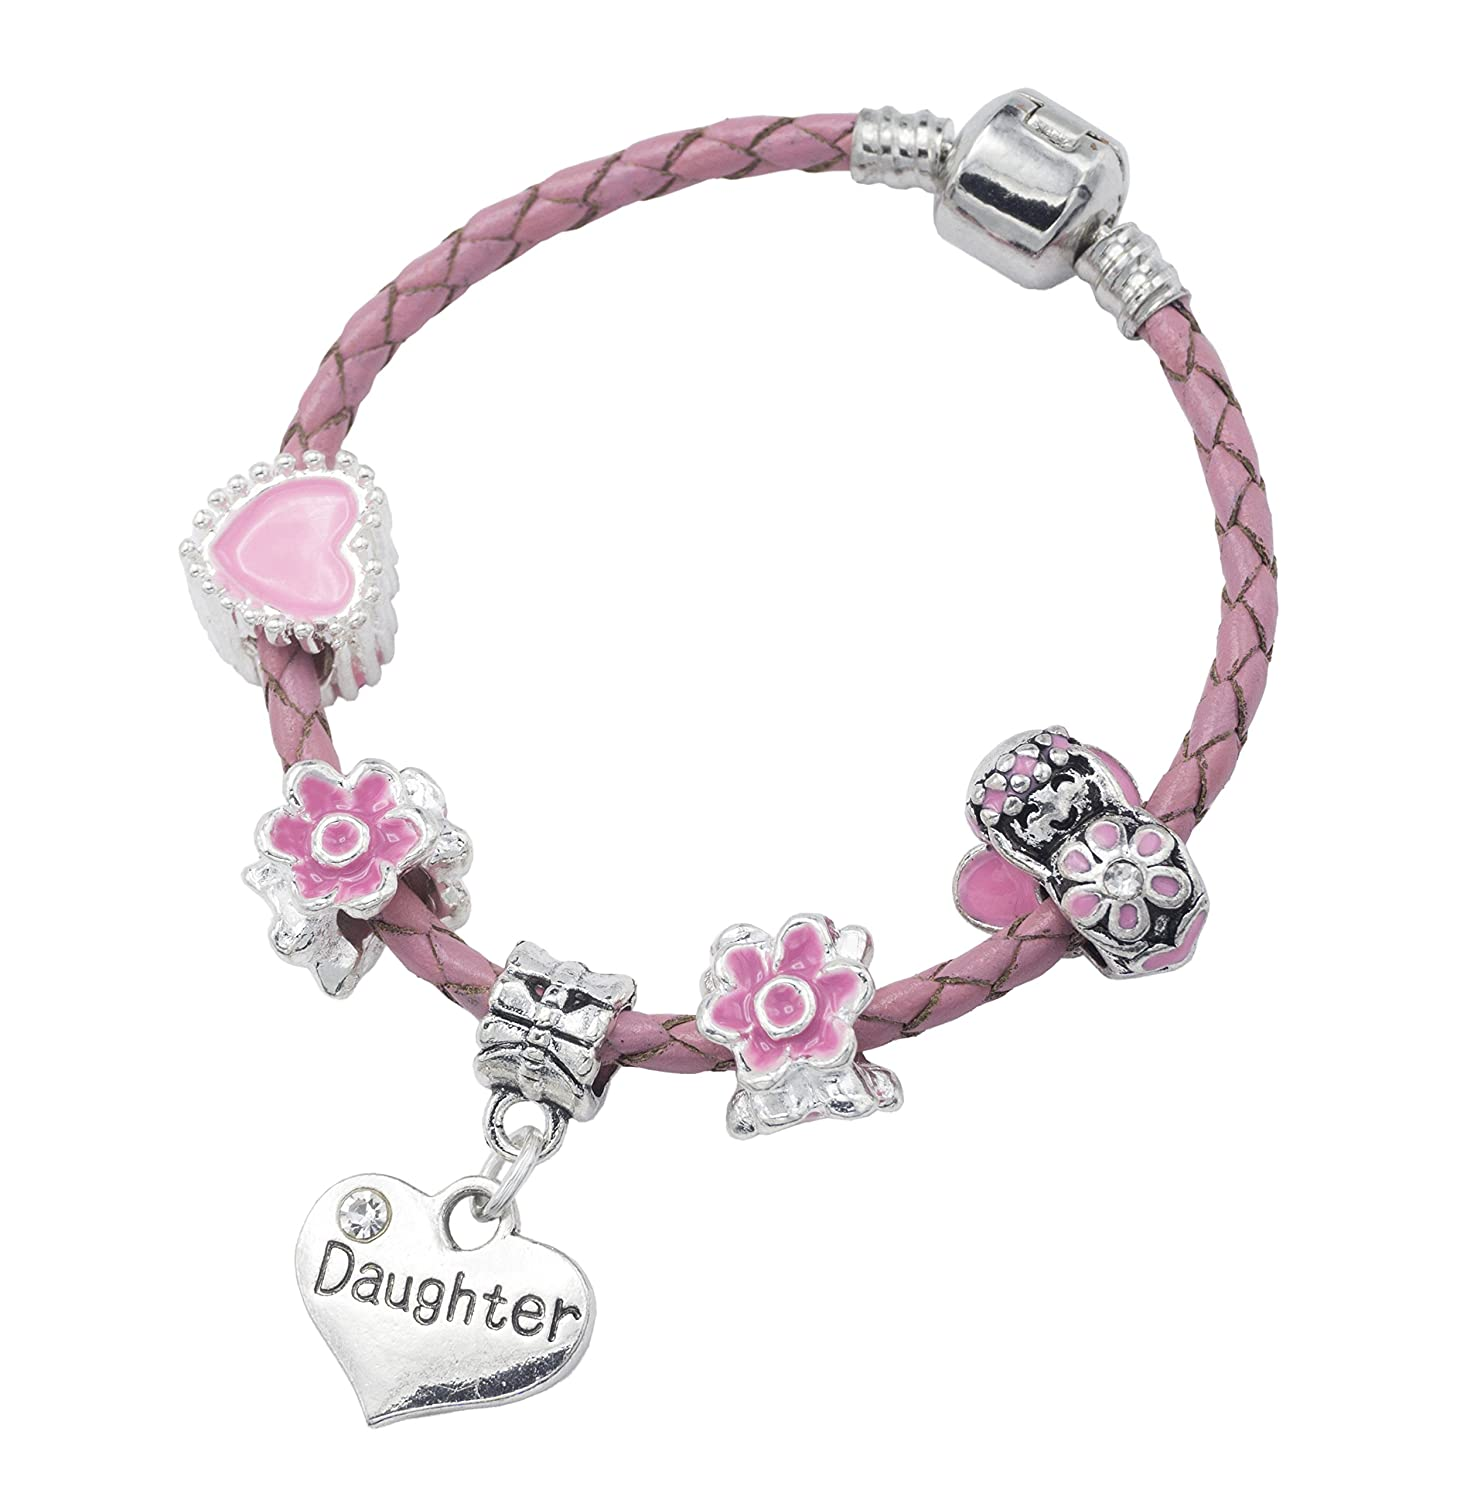 'Daughter' Pink Leather Charm Bracelet for Girls Presented in High Quality Gift Pouch Jewellery Hut BRPNKLTDAUGHTER